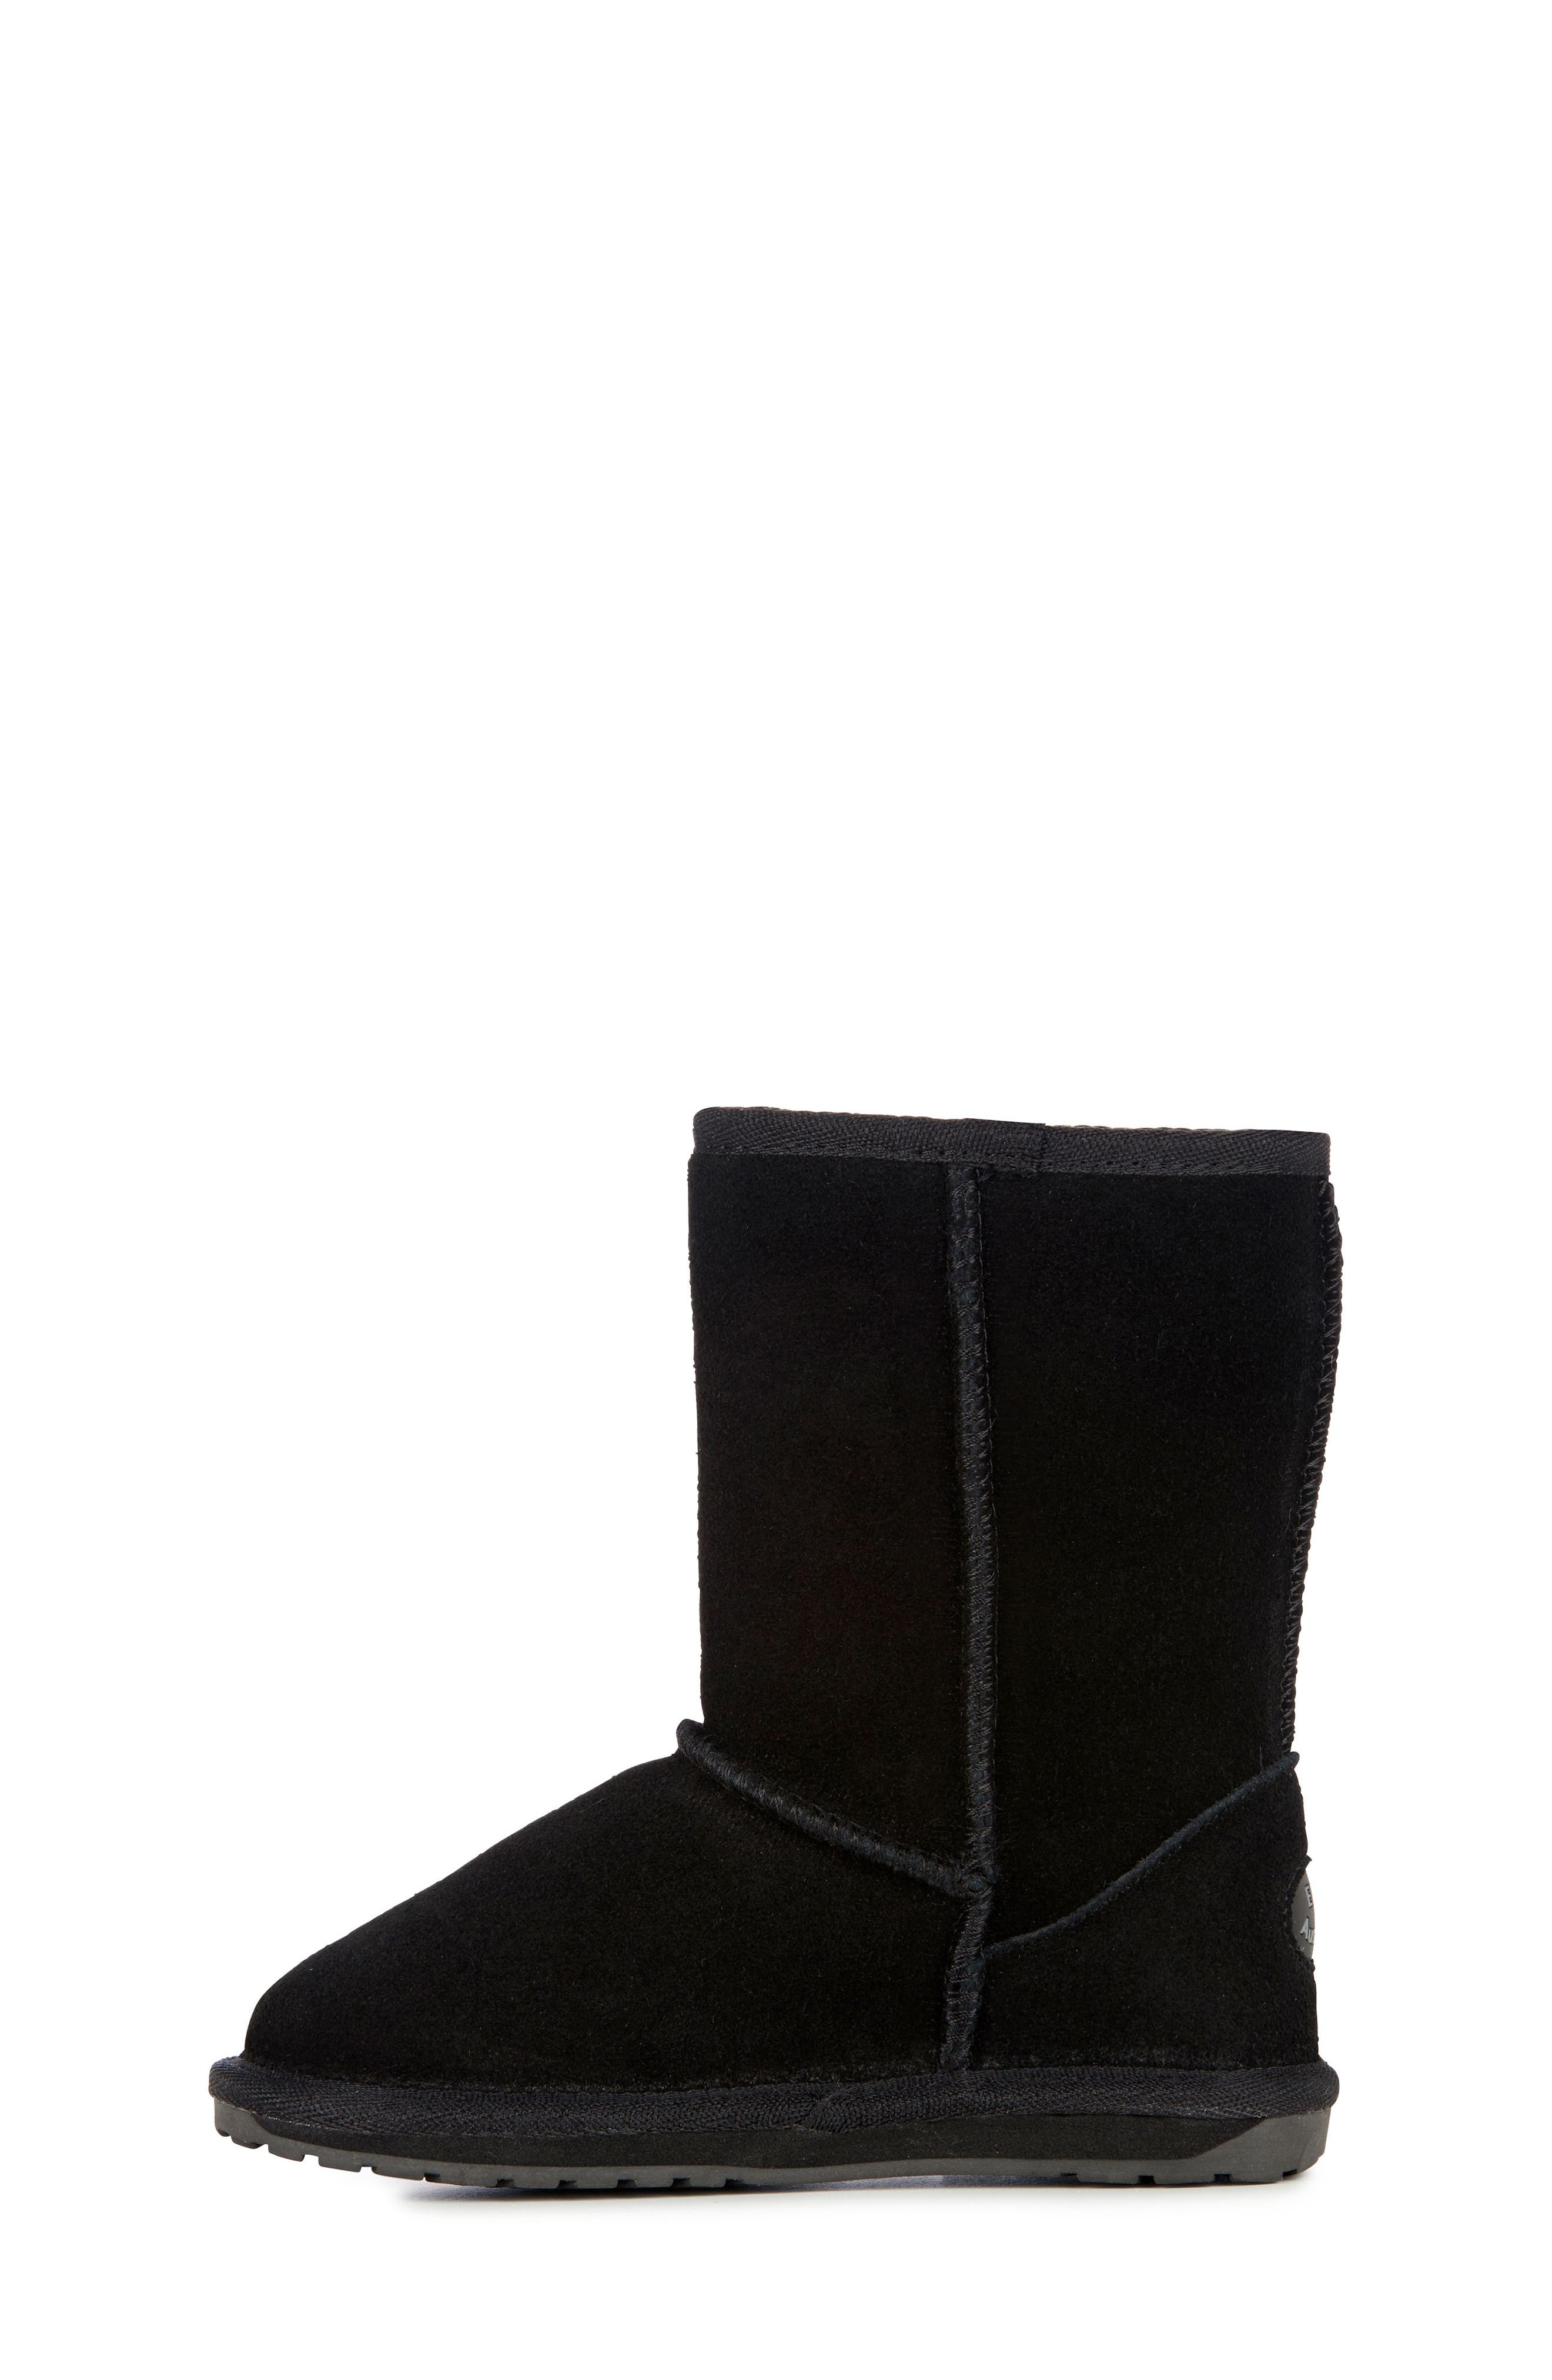 Wallaby Lo Boot,                             Alternate thumbnail 9, color,                             BLACK